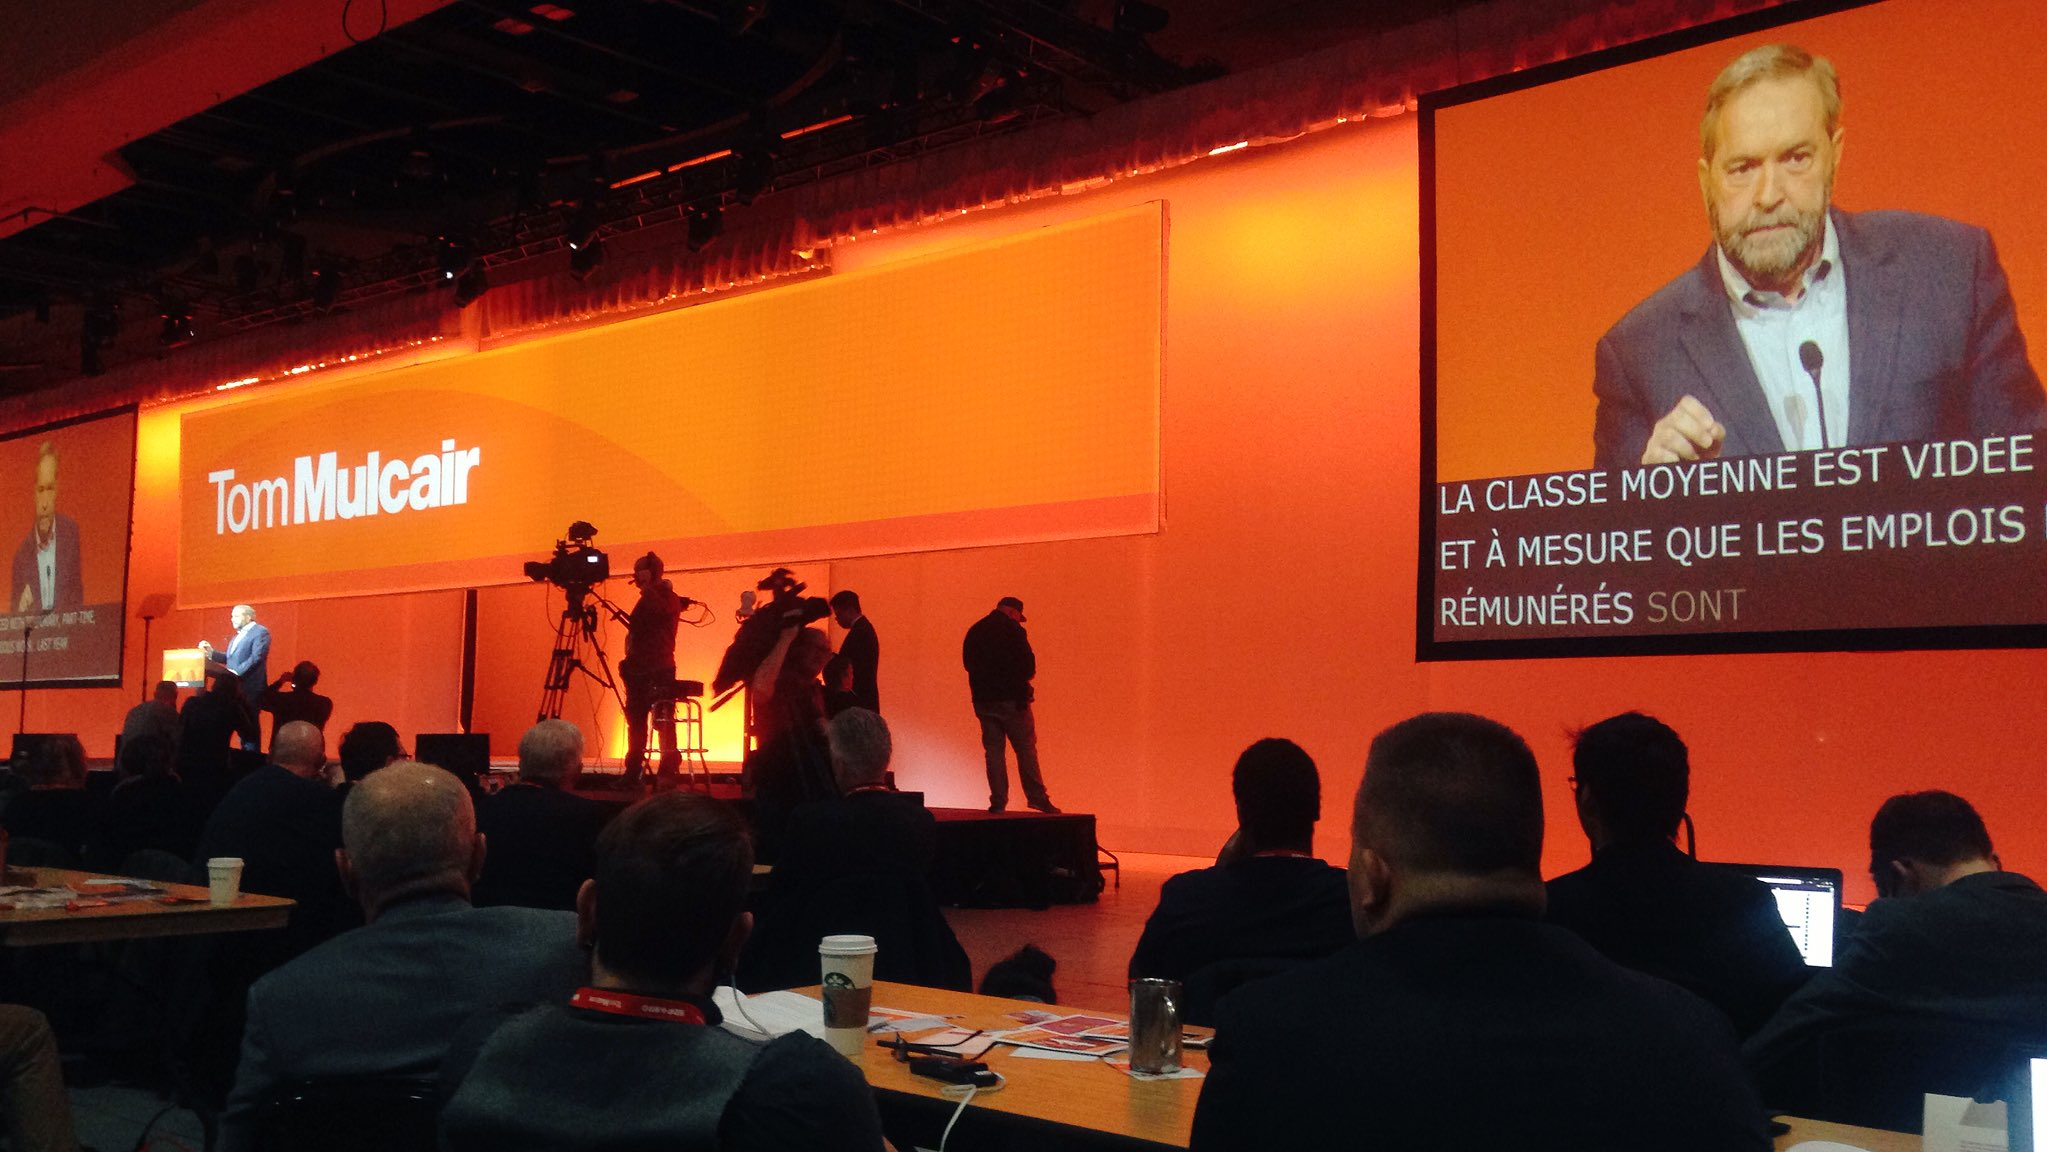 No 'Leader of the #NDP' on the banner behind Tom. What could this mean? #yeg2016 #NDP2016 https://t.co/QOJxizbfh7